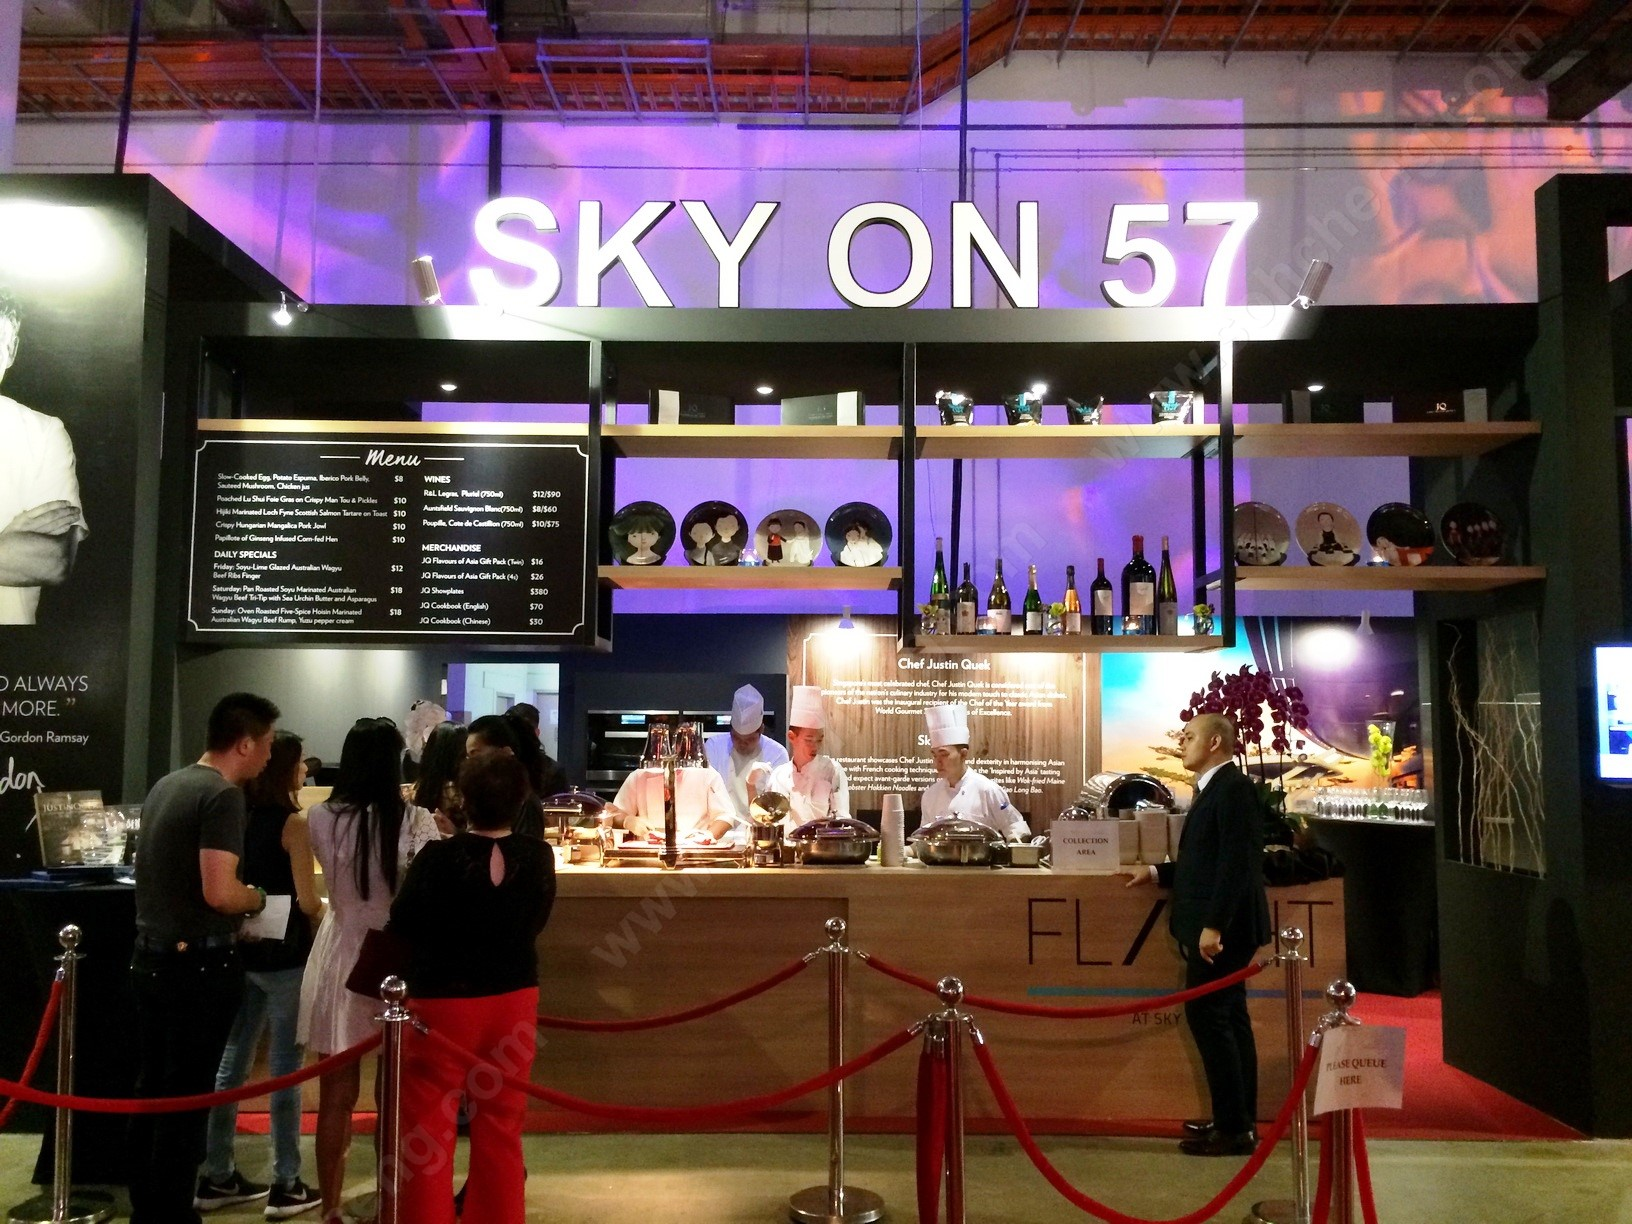 11._Sky_on_57_by_Chef_Justin_Quek